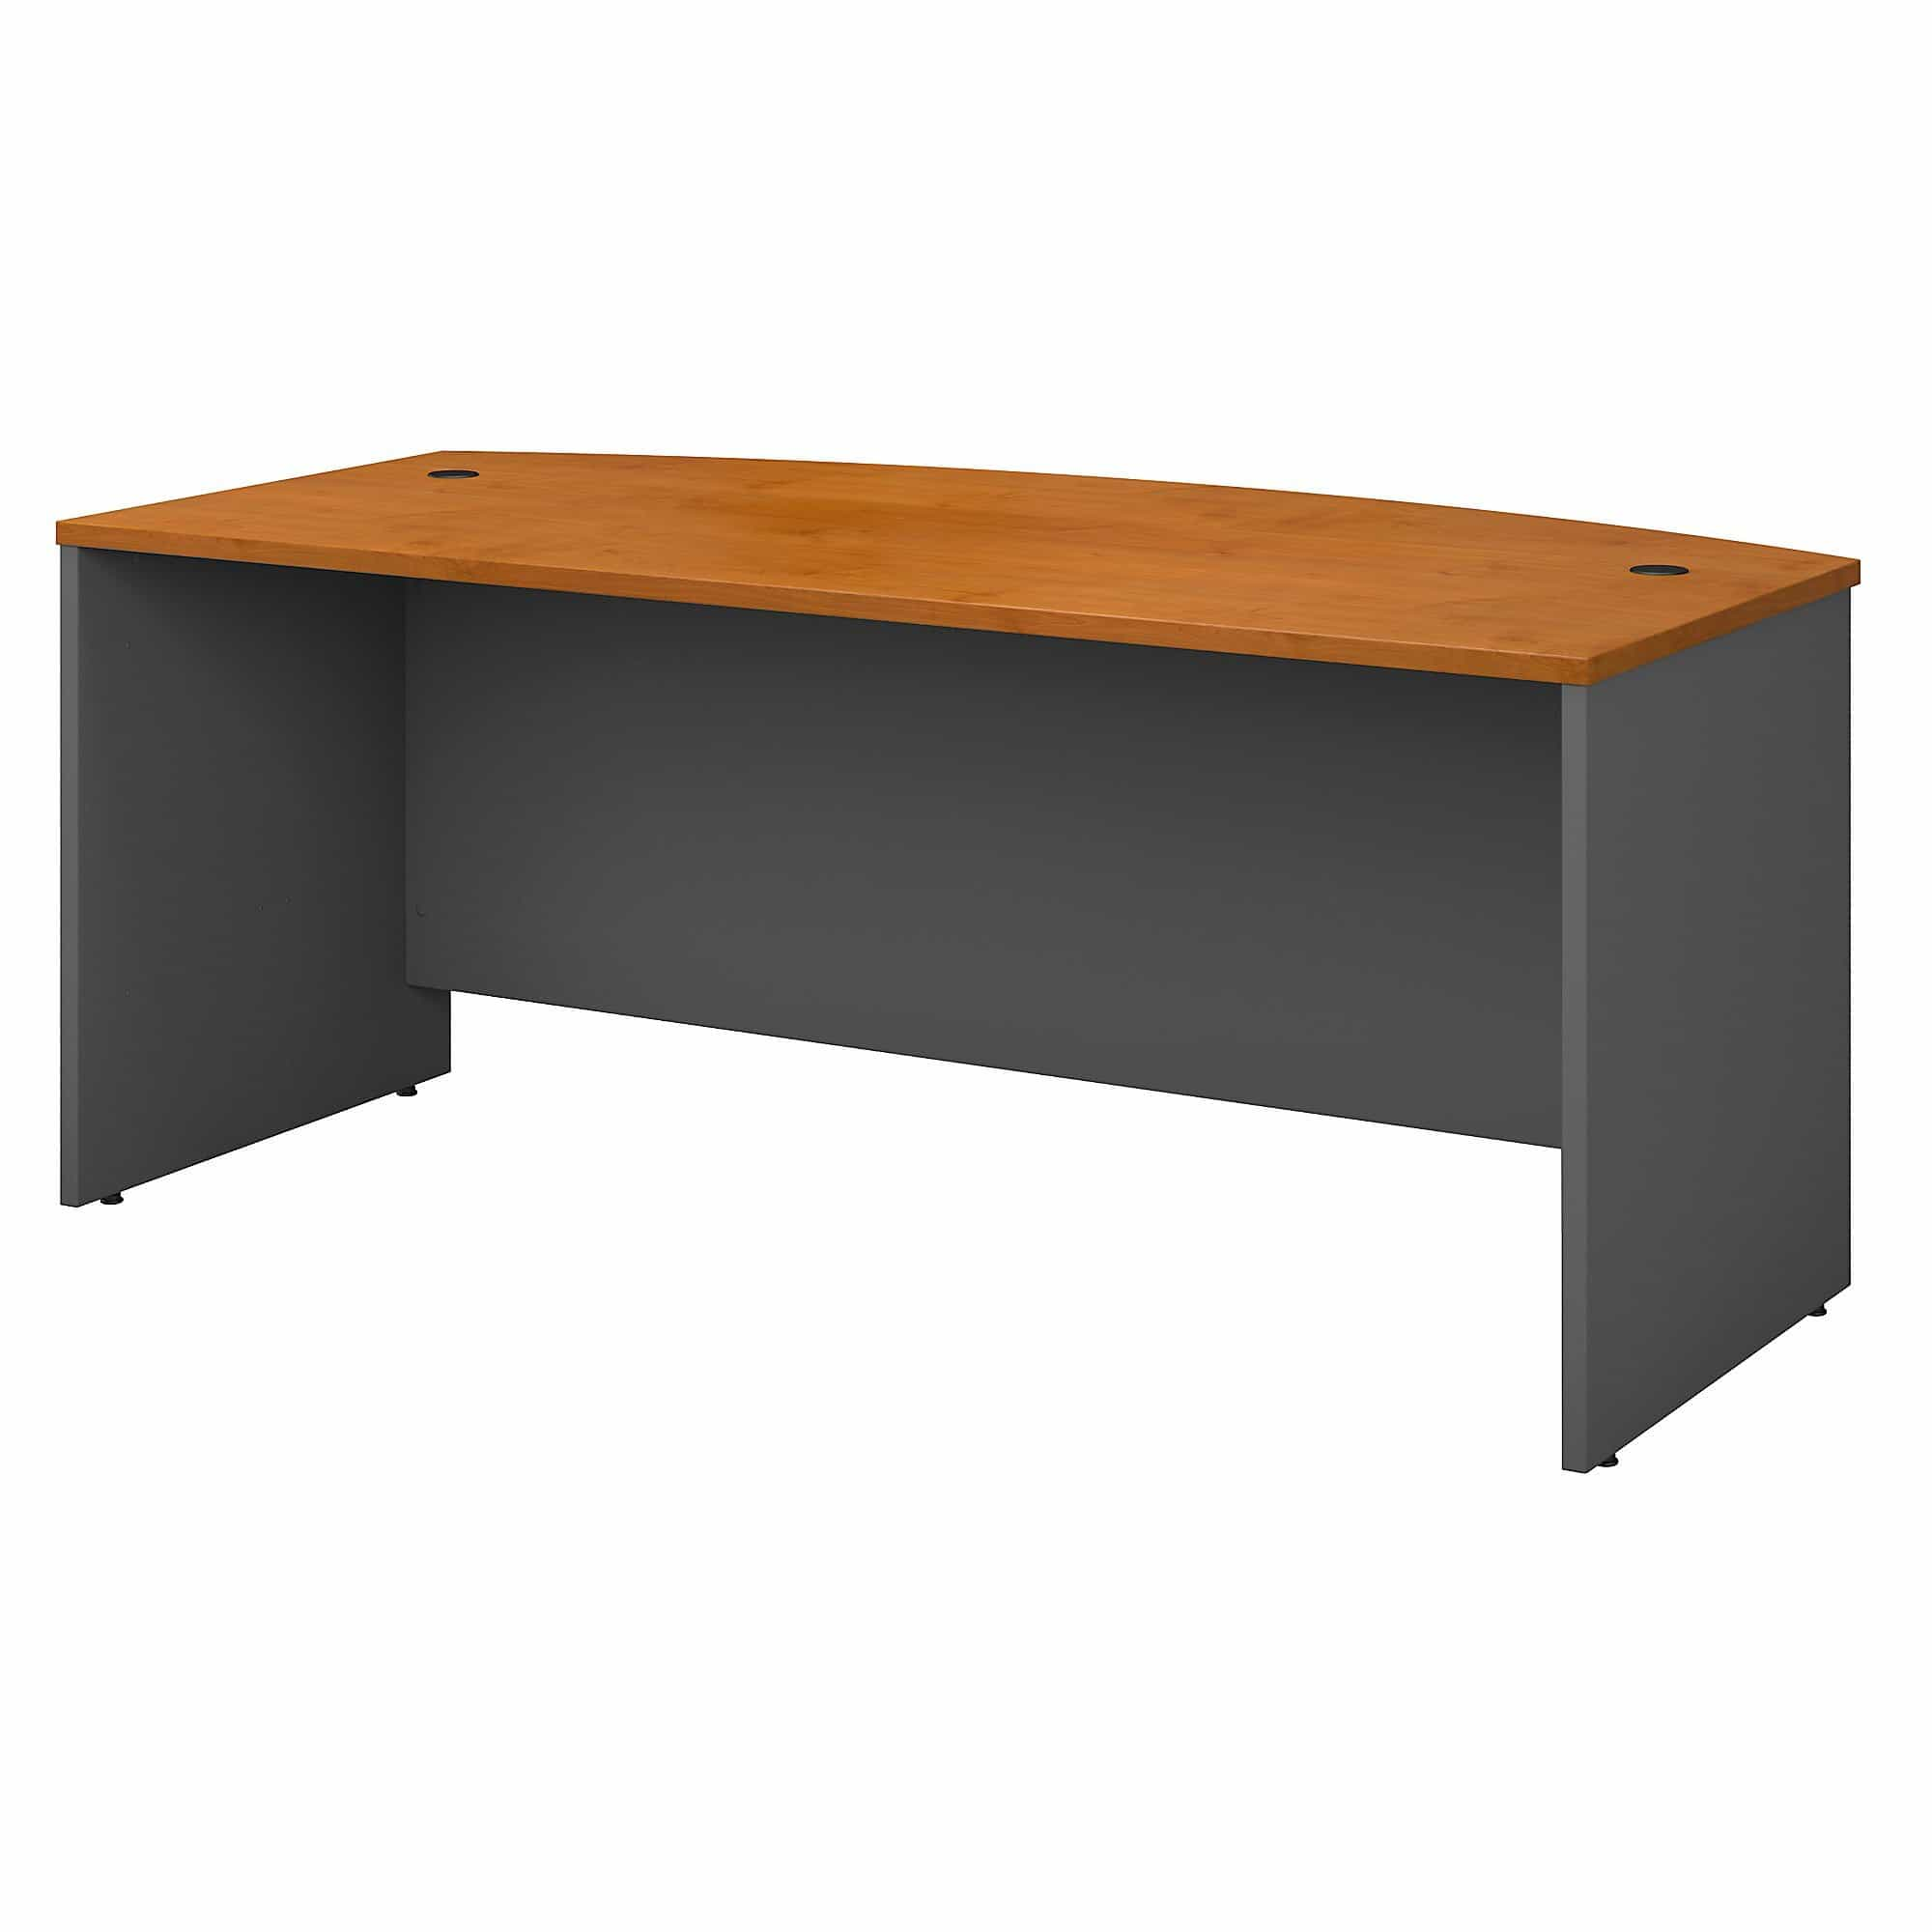 Desks, Credenzas, Bridges, Returns & Bundles